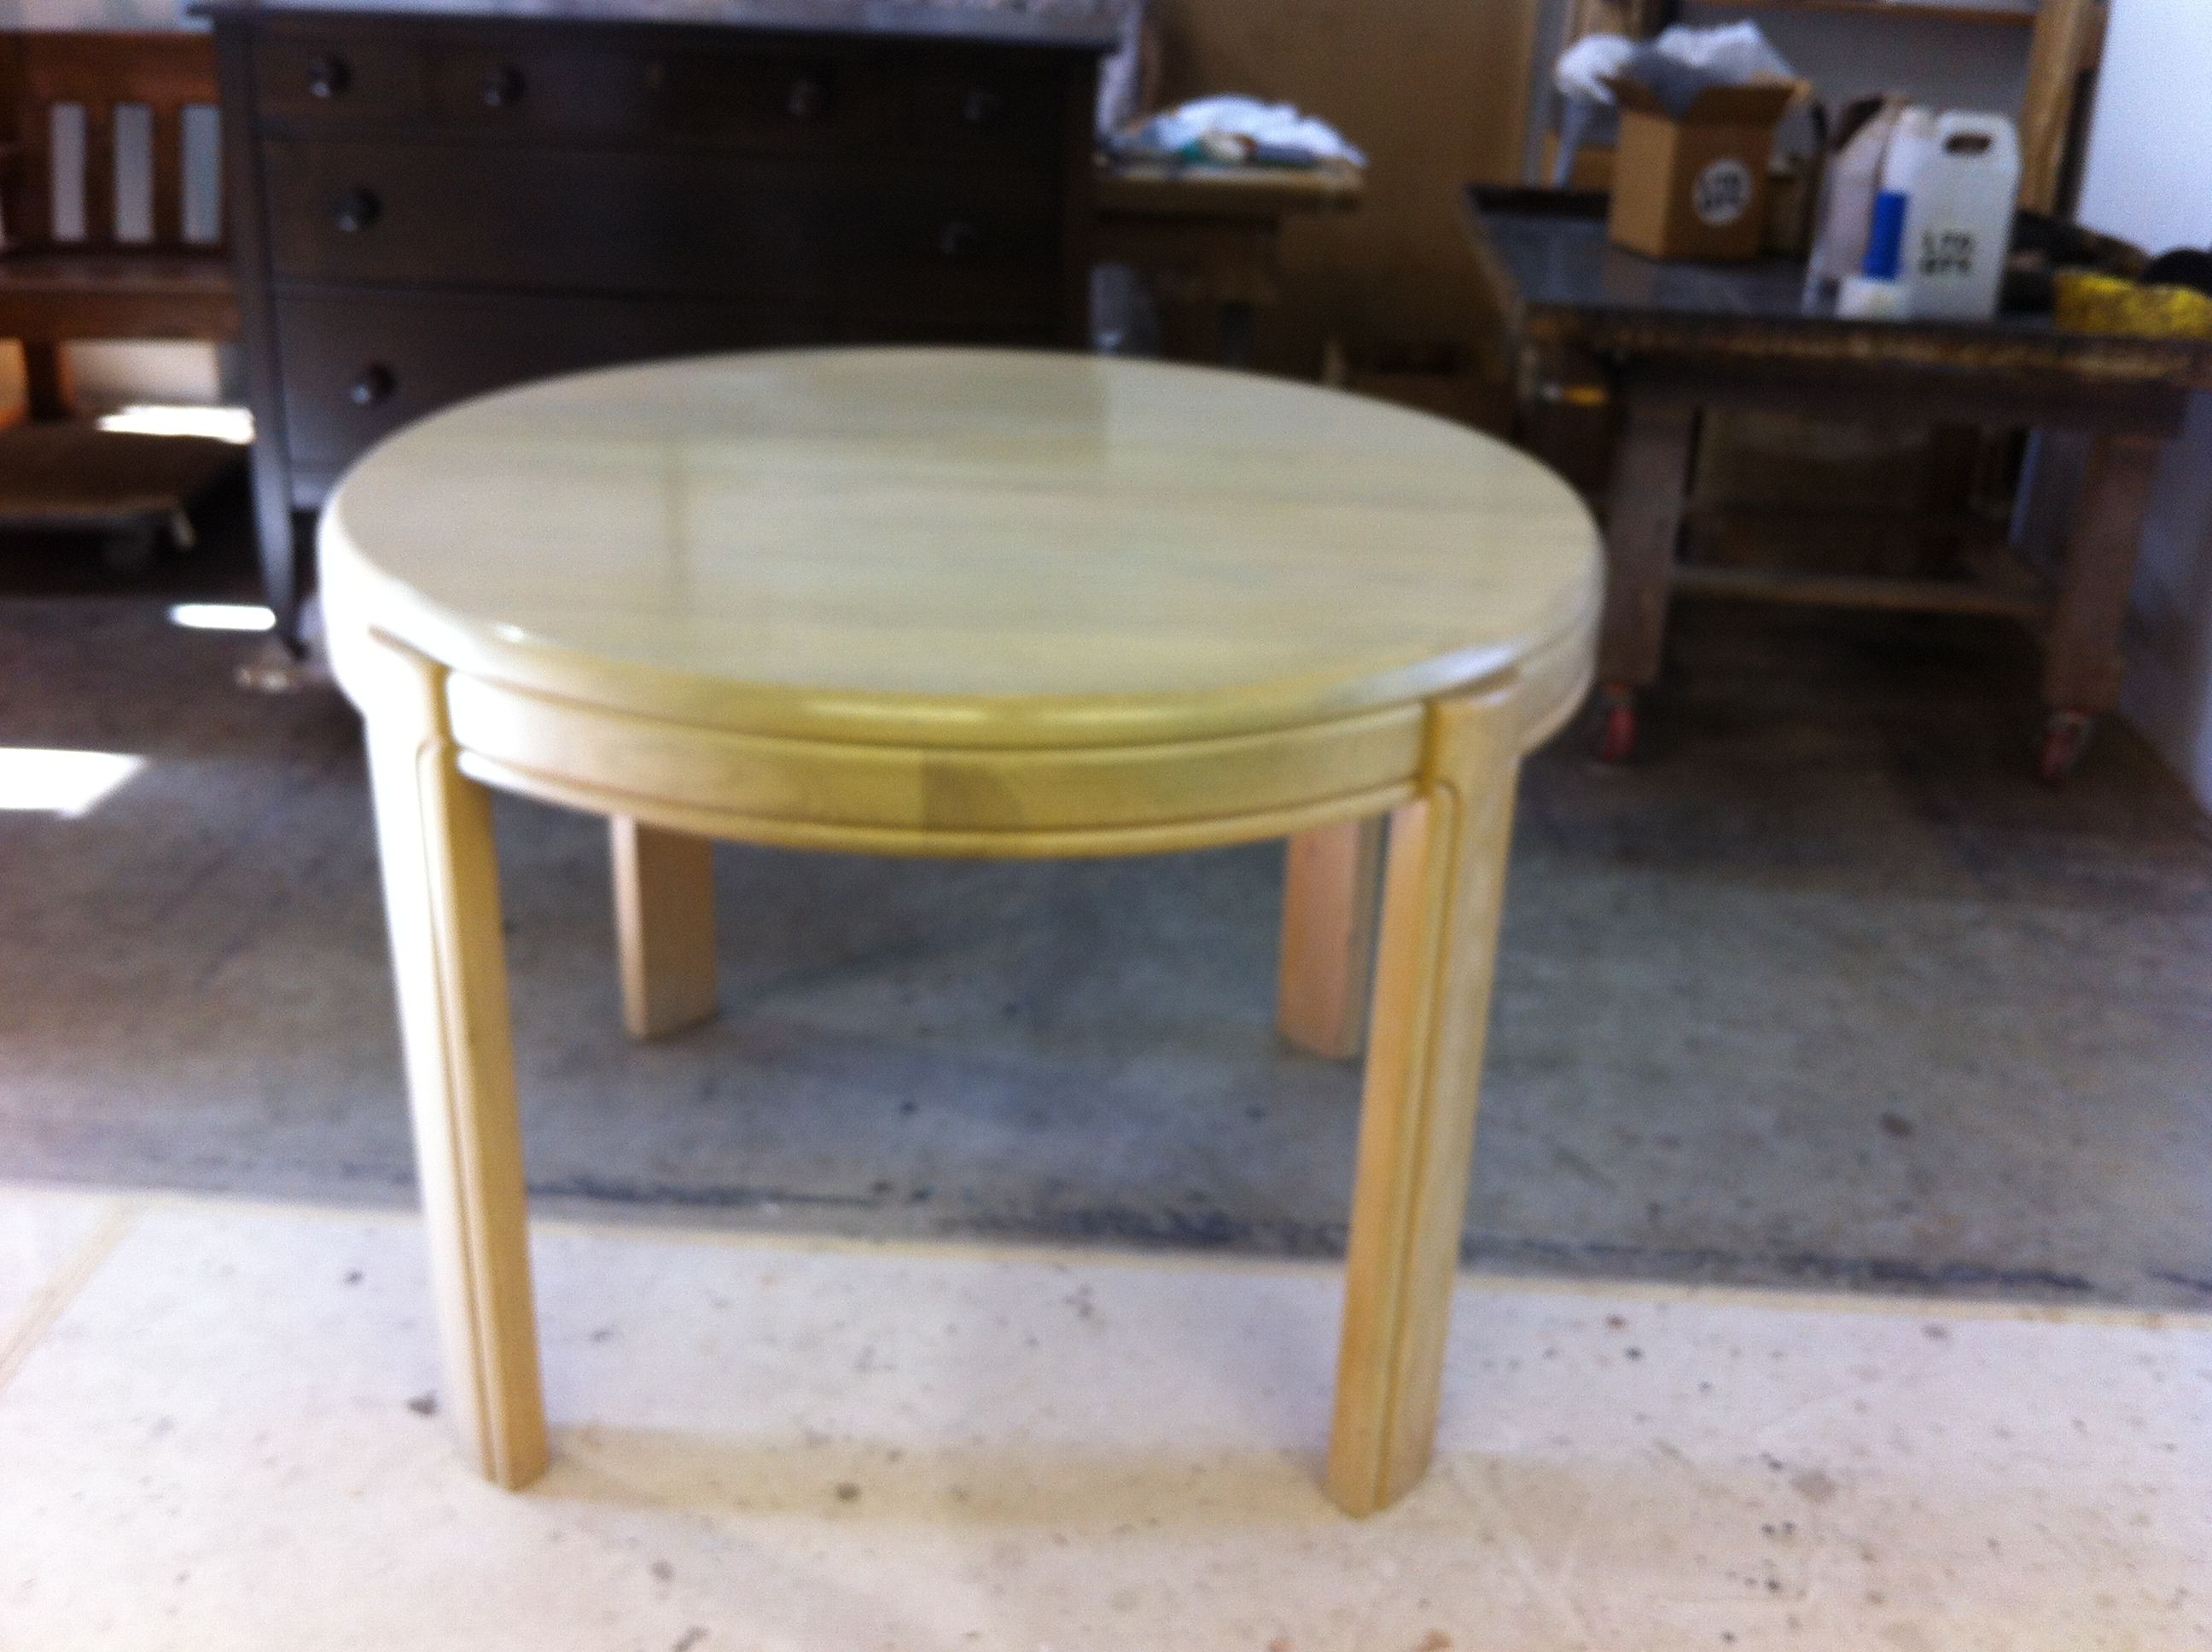 Oak dining table to be refinished by AM Furniture Finishing